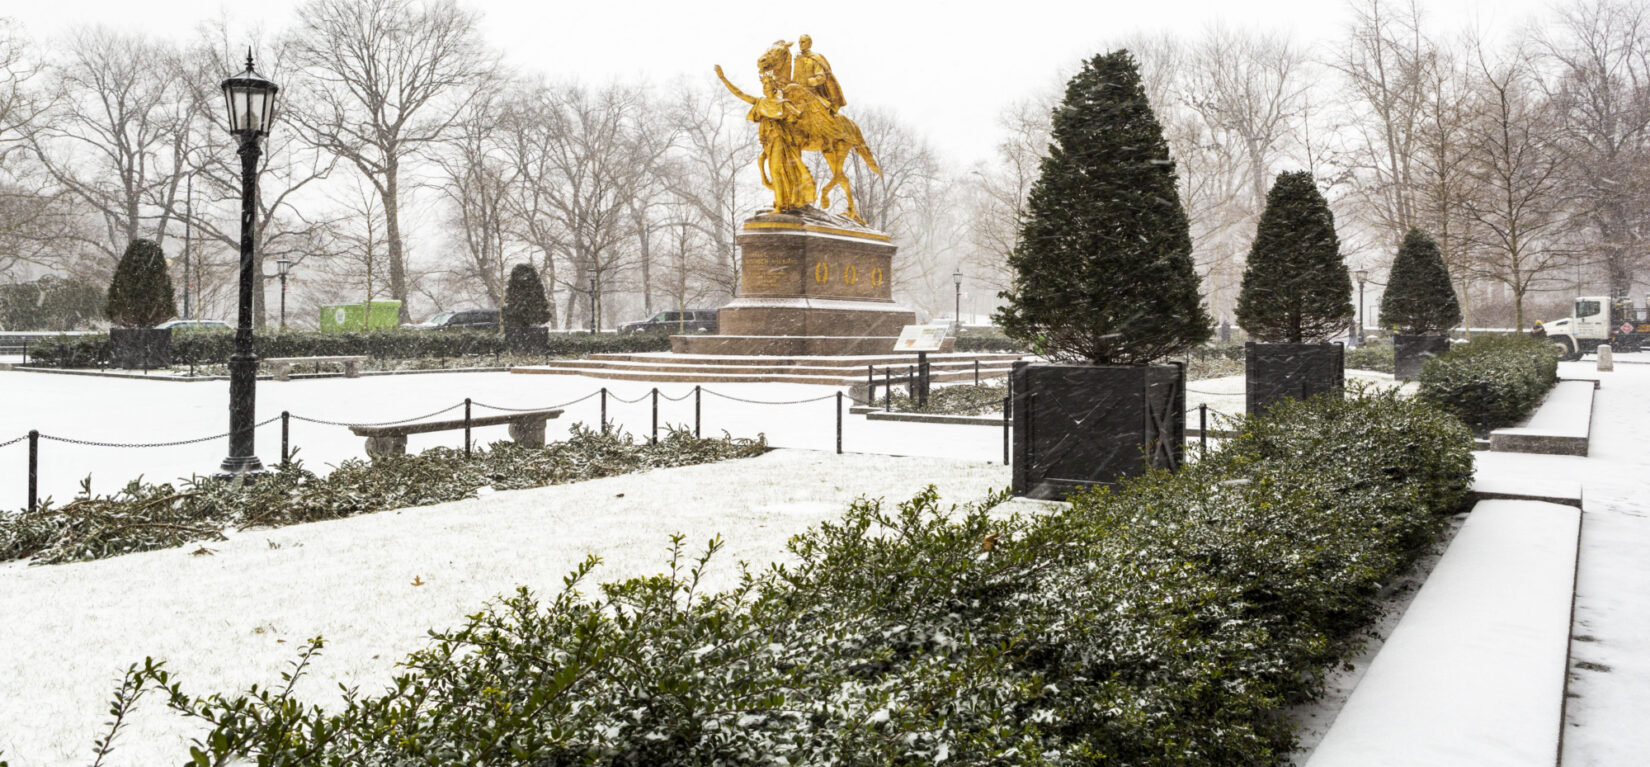 The statue of General Sherman is the focal point of Grand Army Plaza dusted with snow